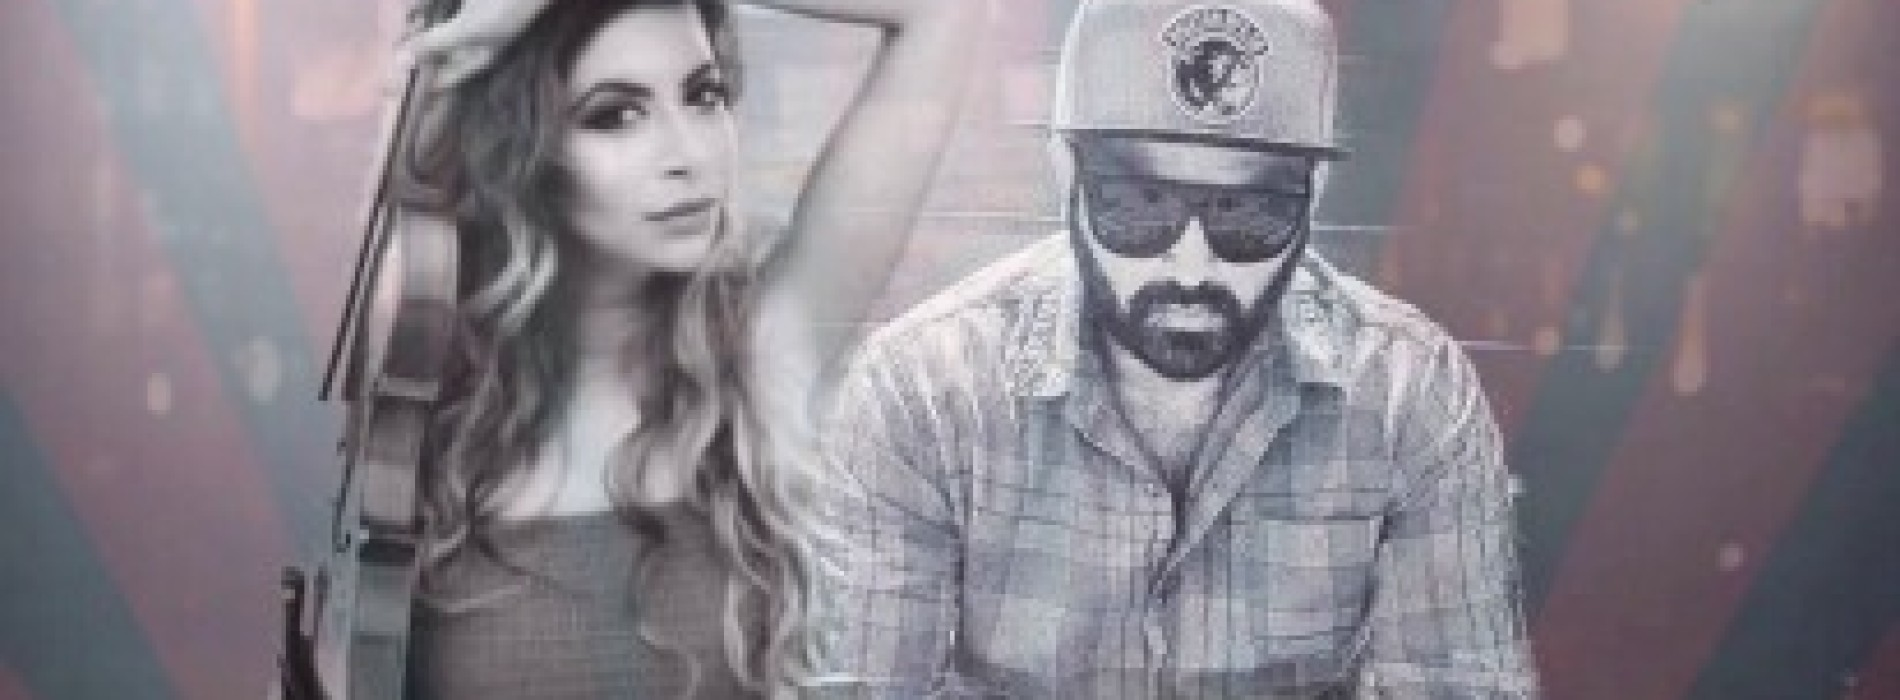 Deyo & Janani Are Working On An Ep Together!